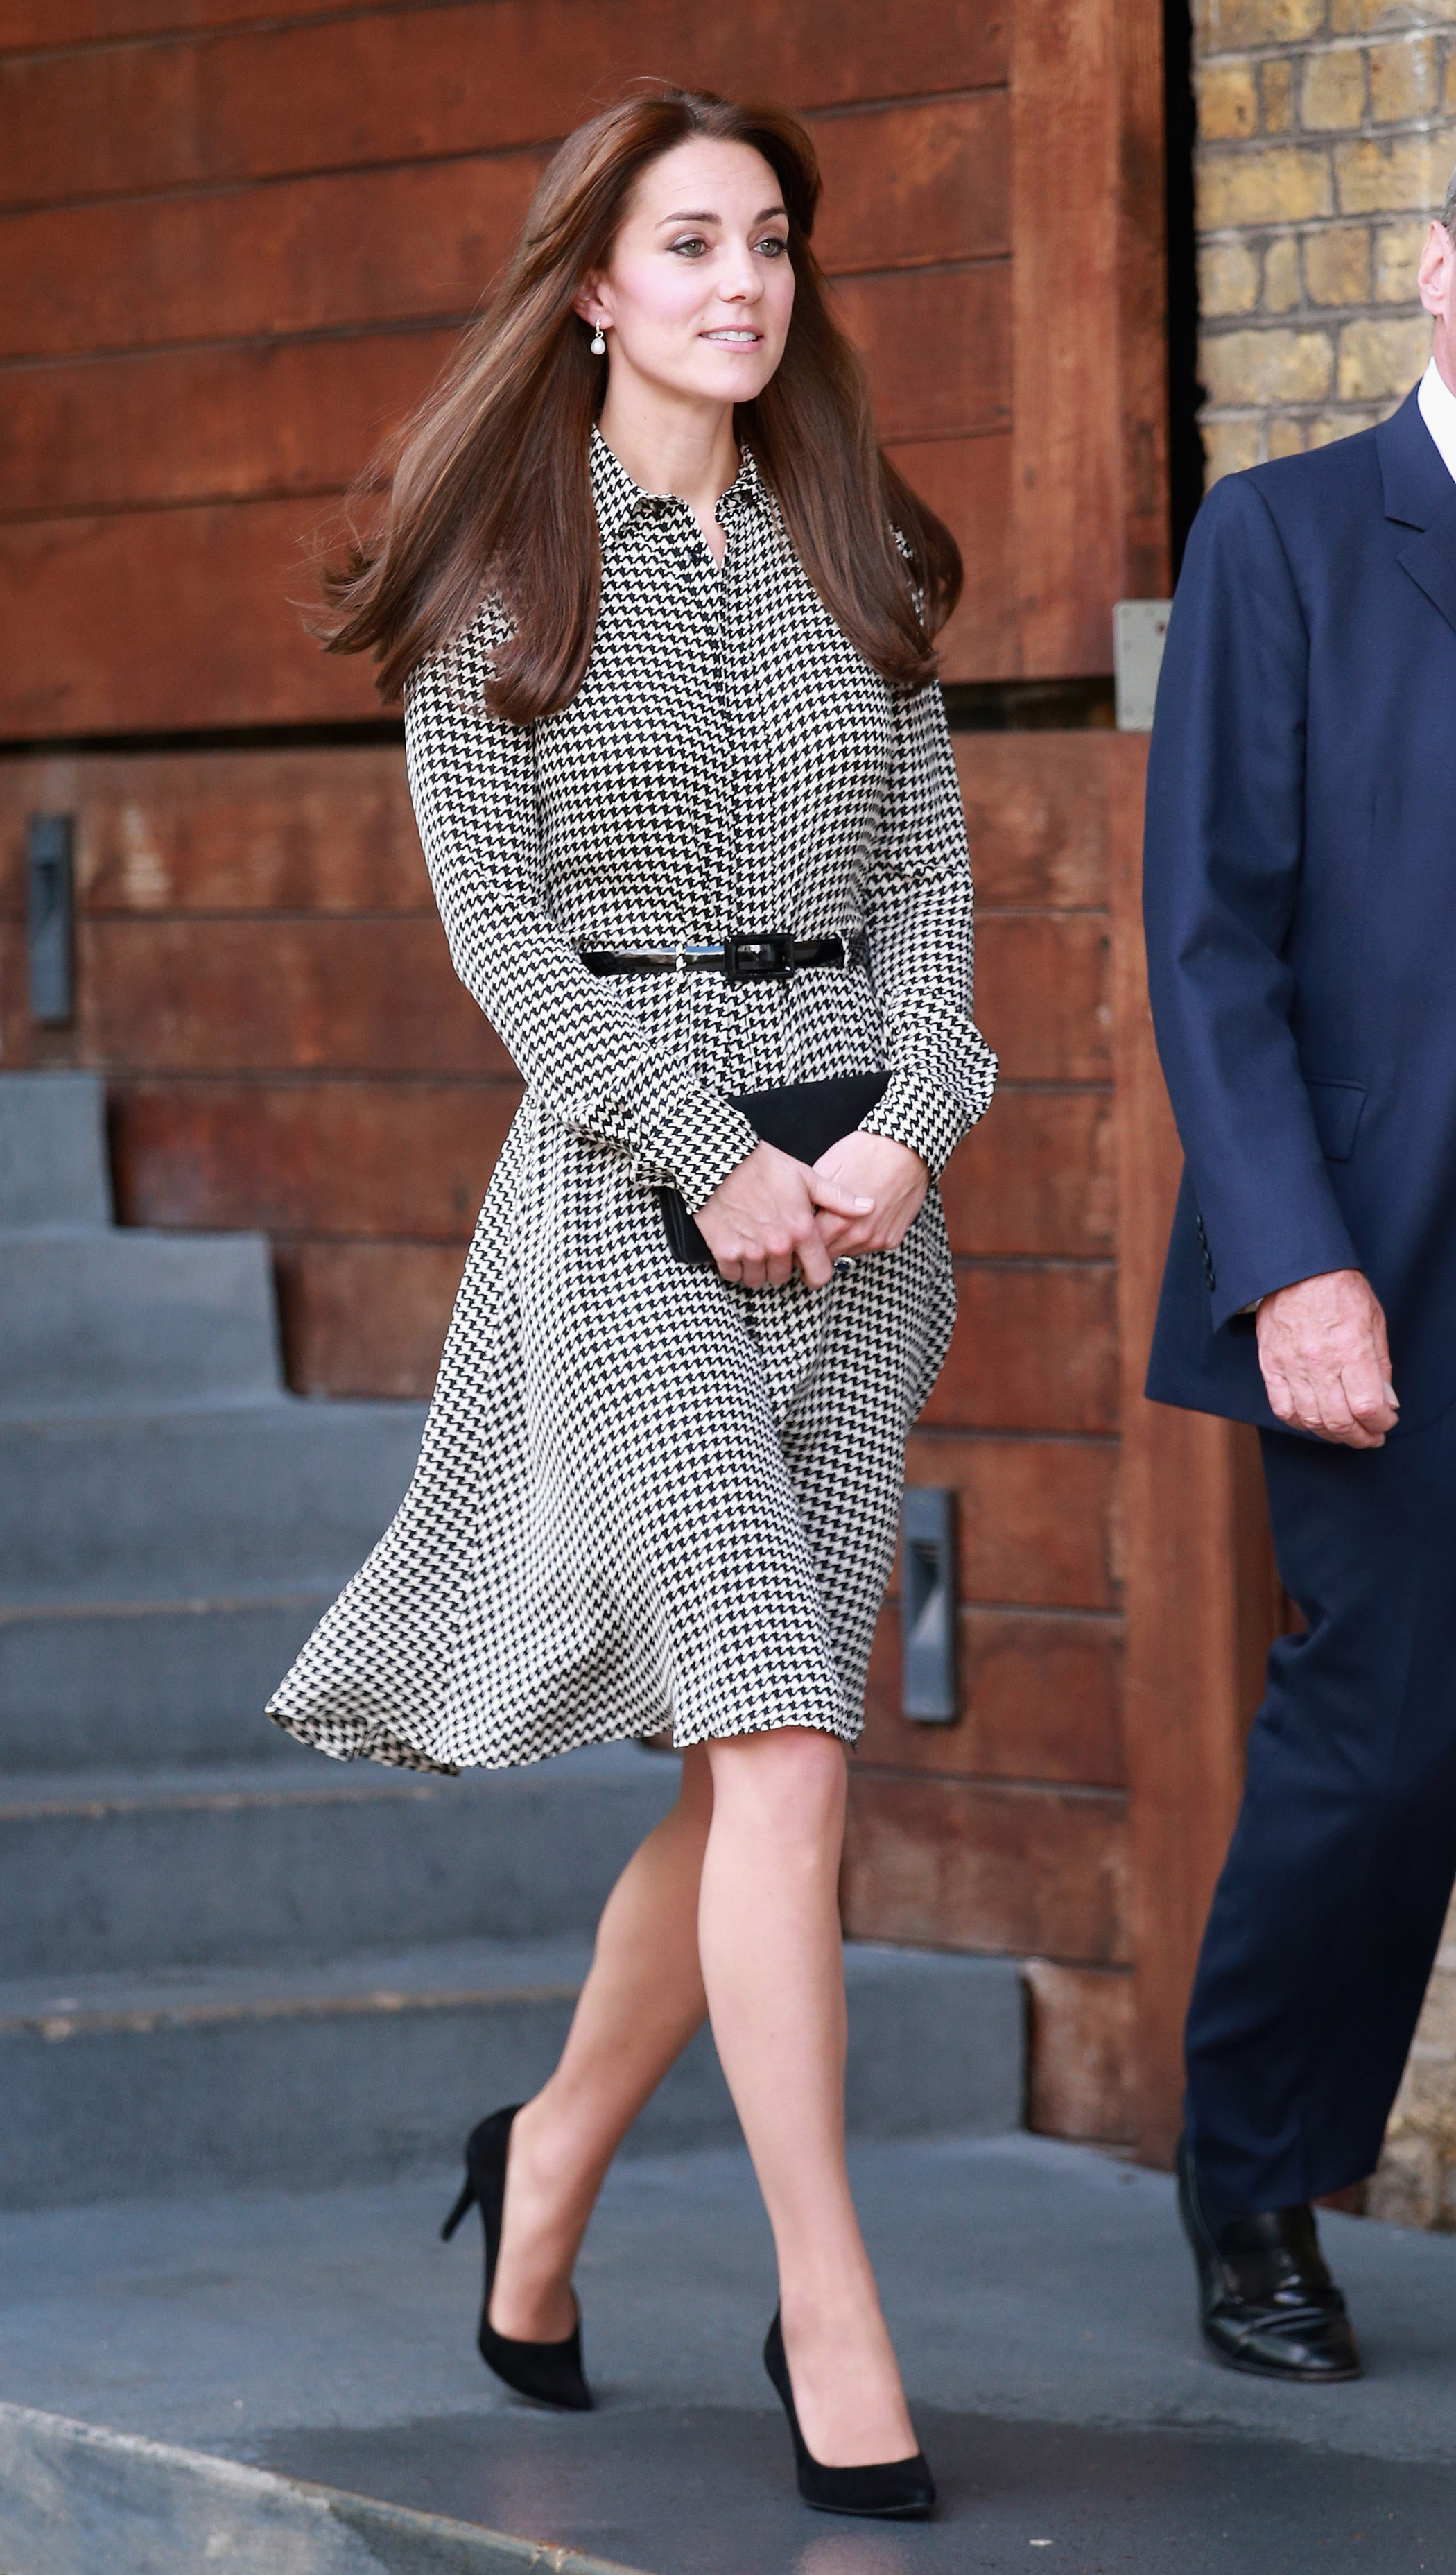 Britain's Kate Duchess of Cambridge during to her  visit to the Anna Freud Centre on Sept. 17, 2015 in London.